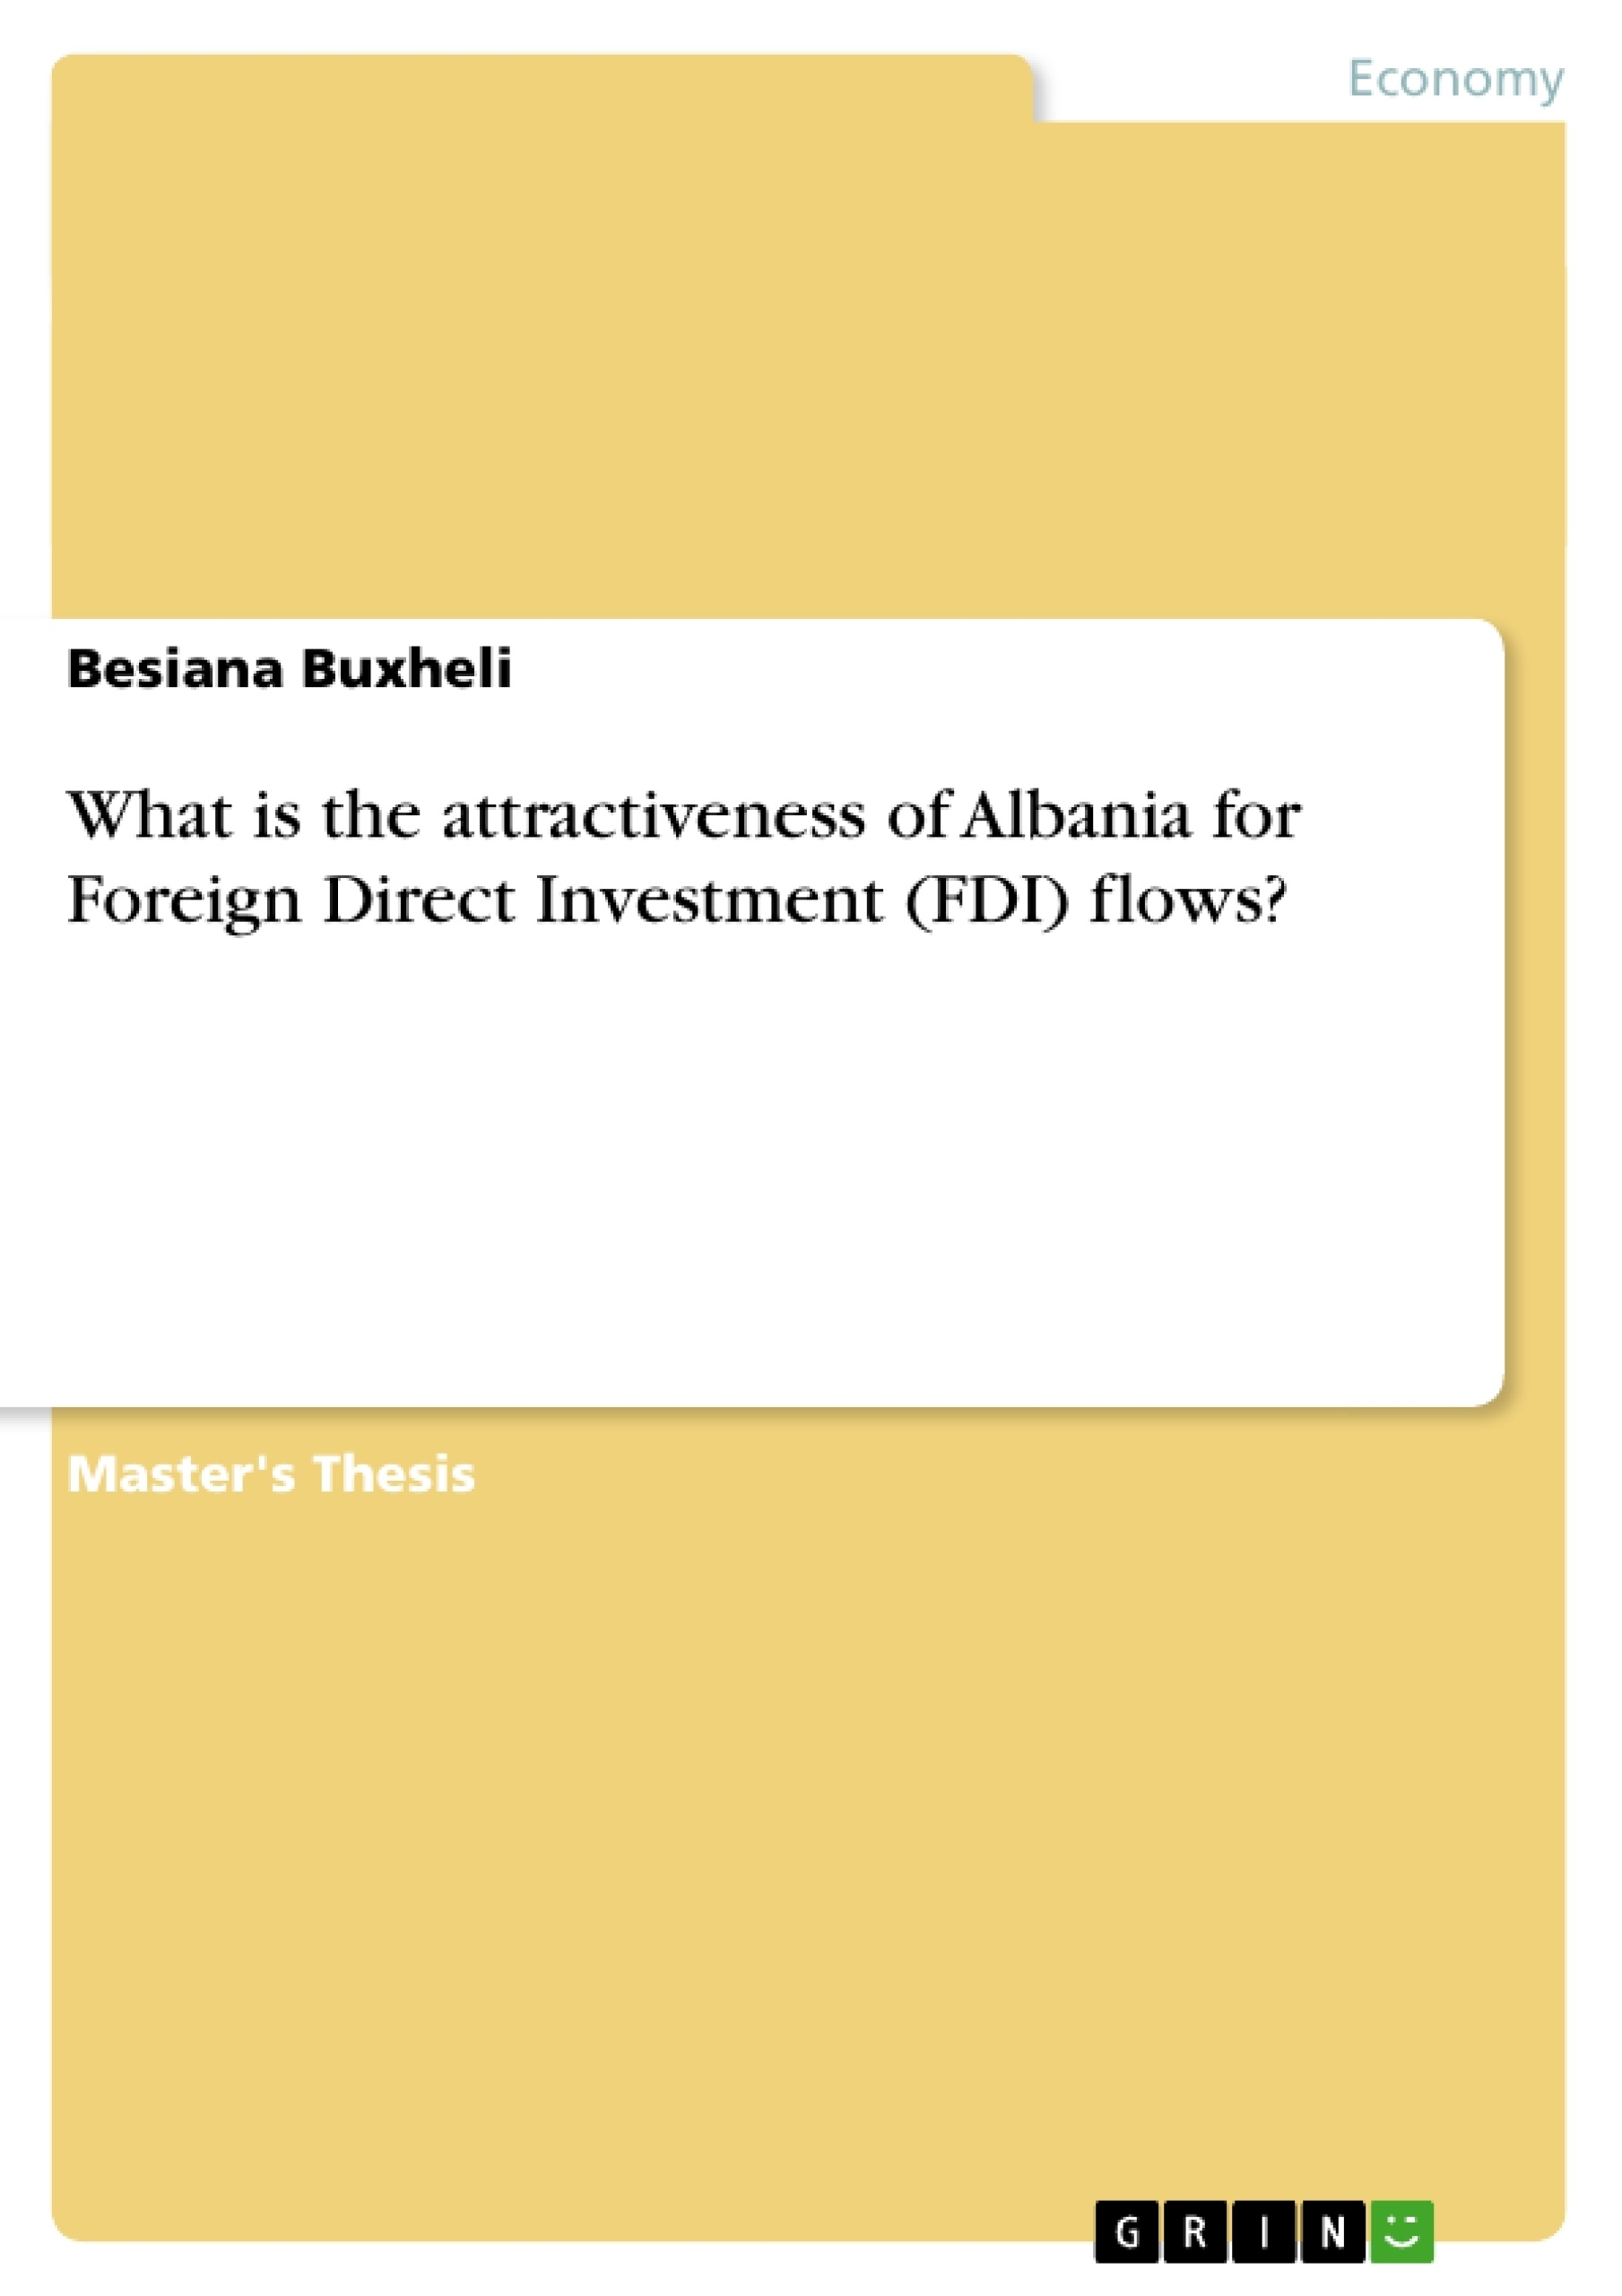 Title: What is the attractiveness of Albania for Foreign Direct Investment (FDI) flows?